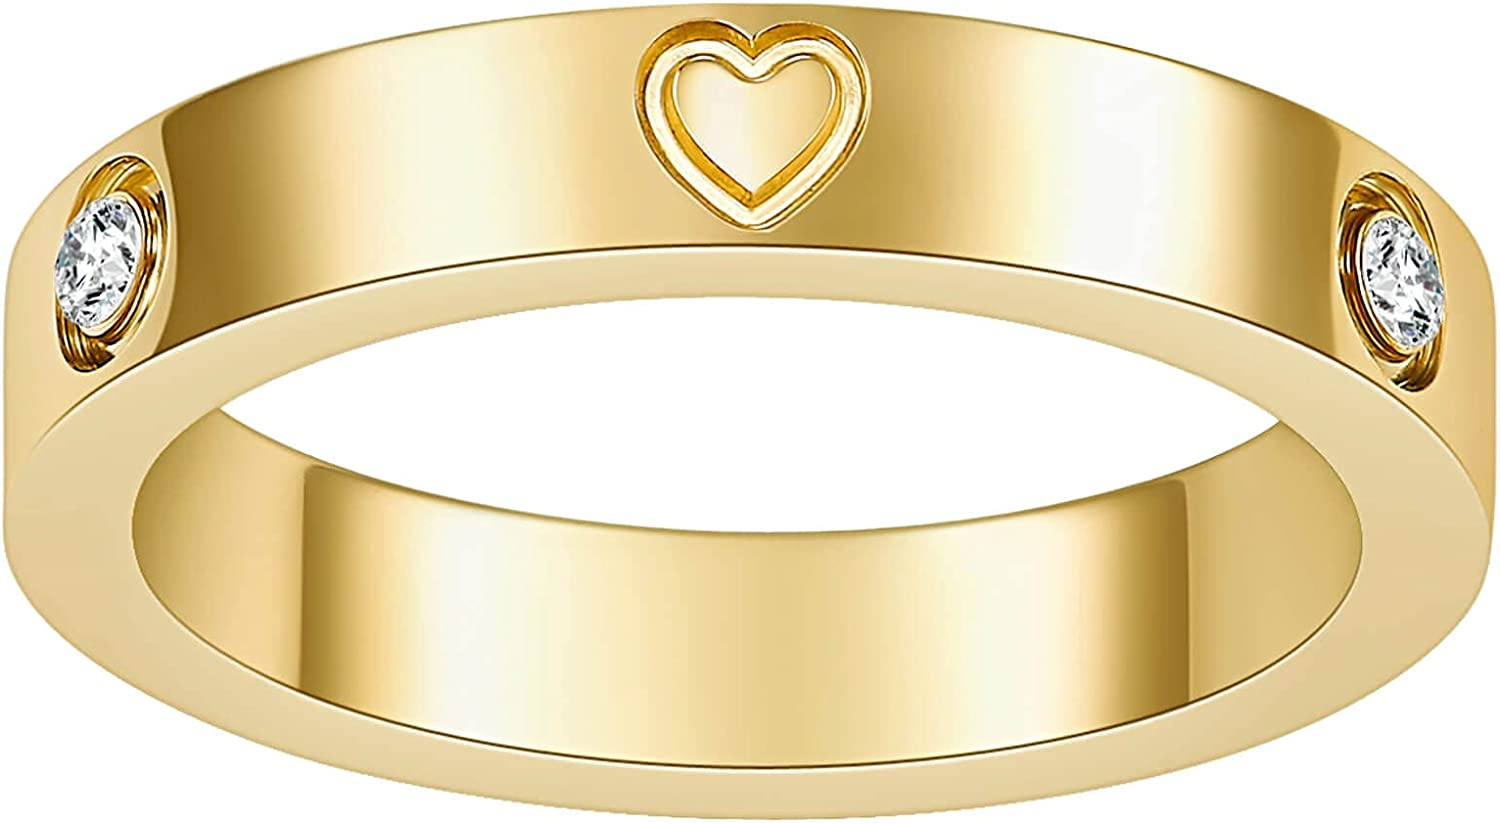 Nireus Love Friendship Cute Heart Rings for Women Teen Girls, 18k Gold Plated Cubic Zirconia Stainless Steel Band Ring, Size 5-11